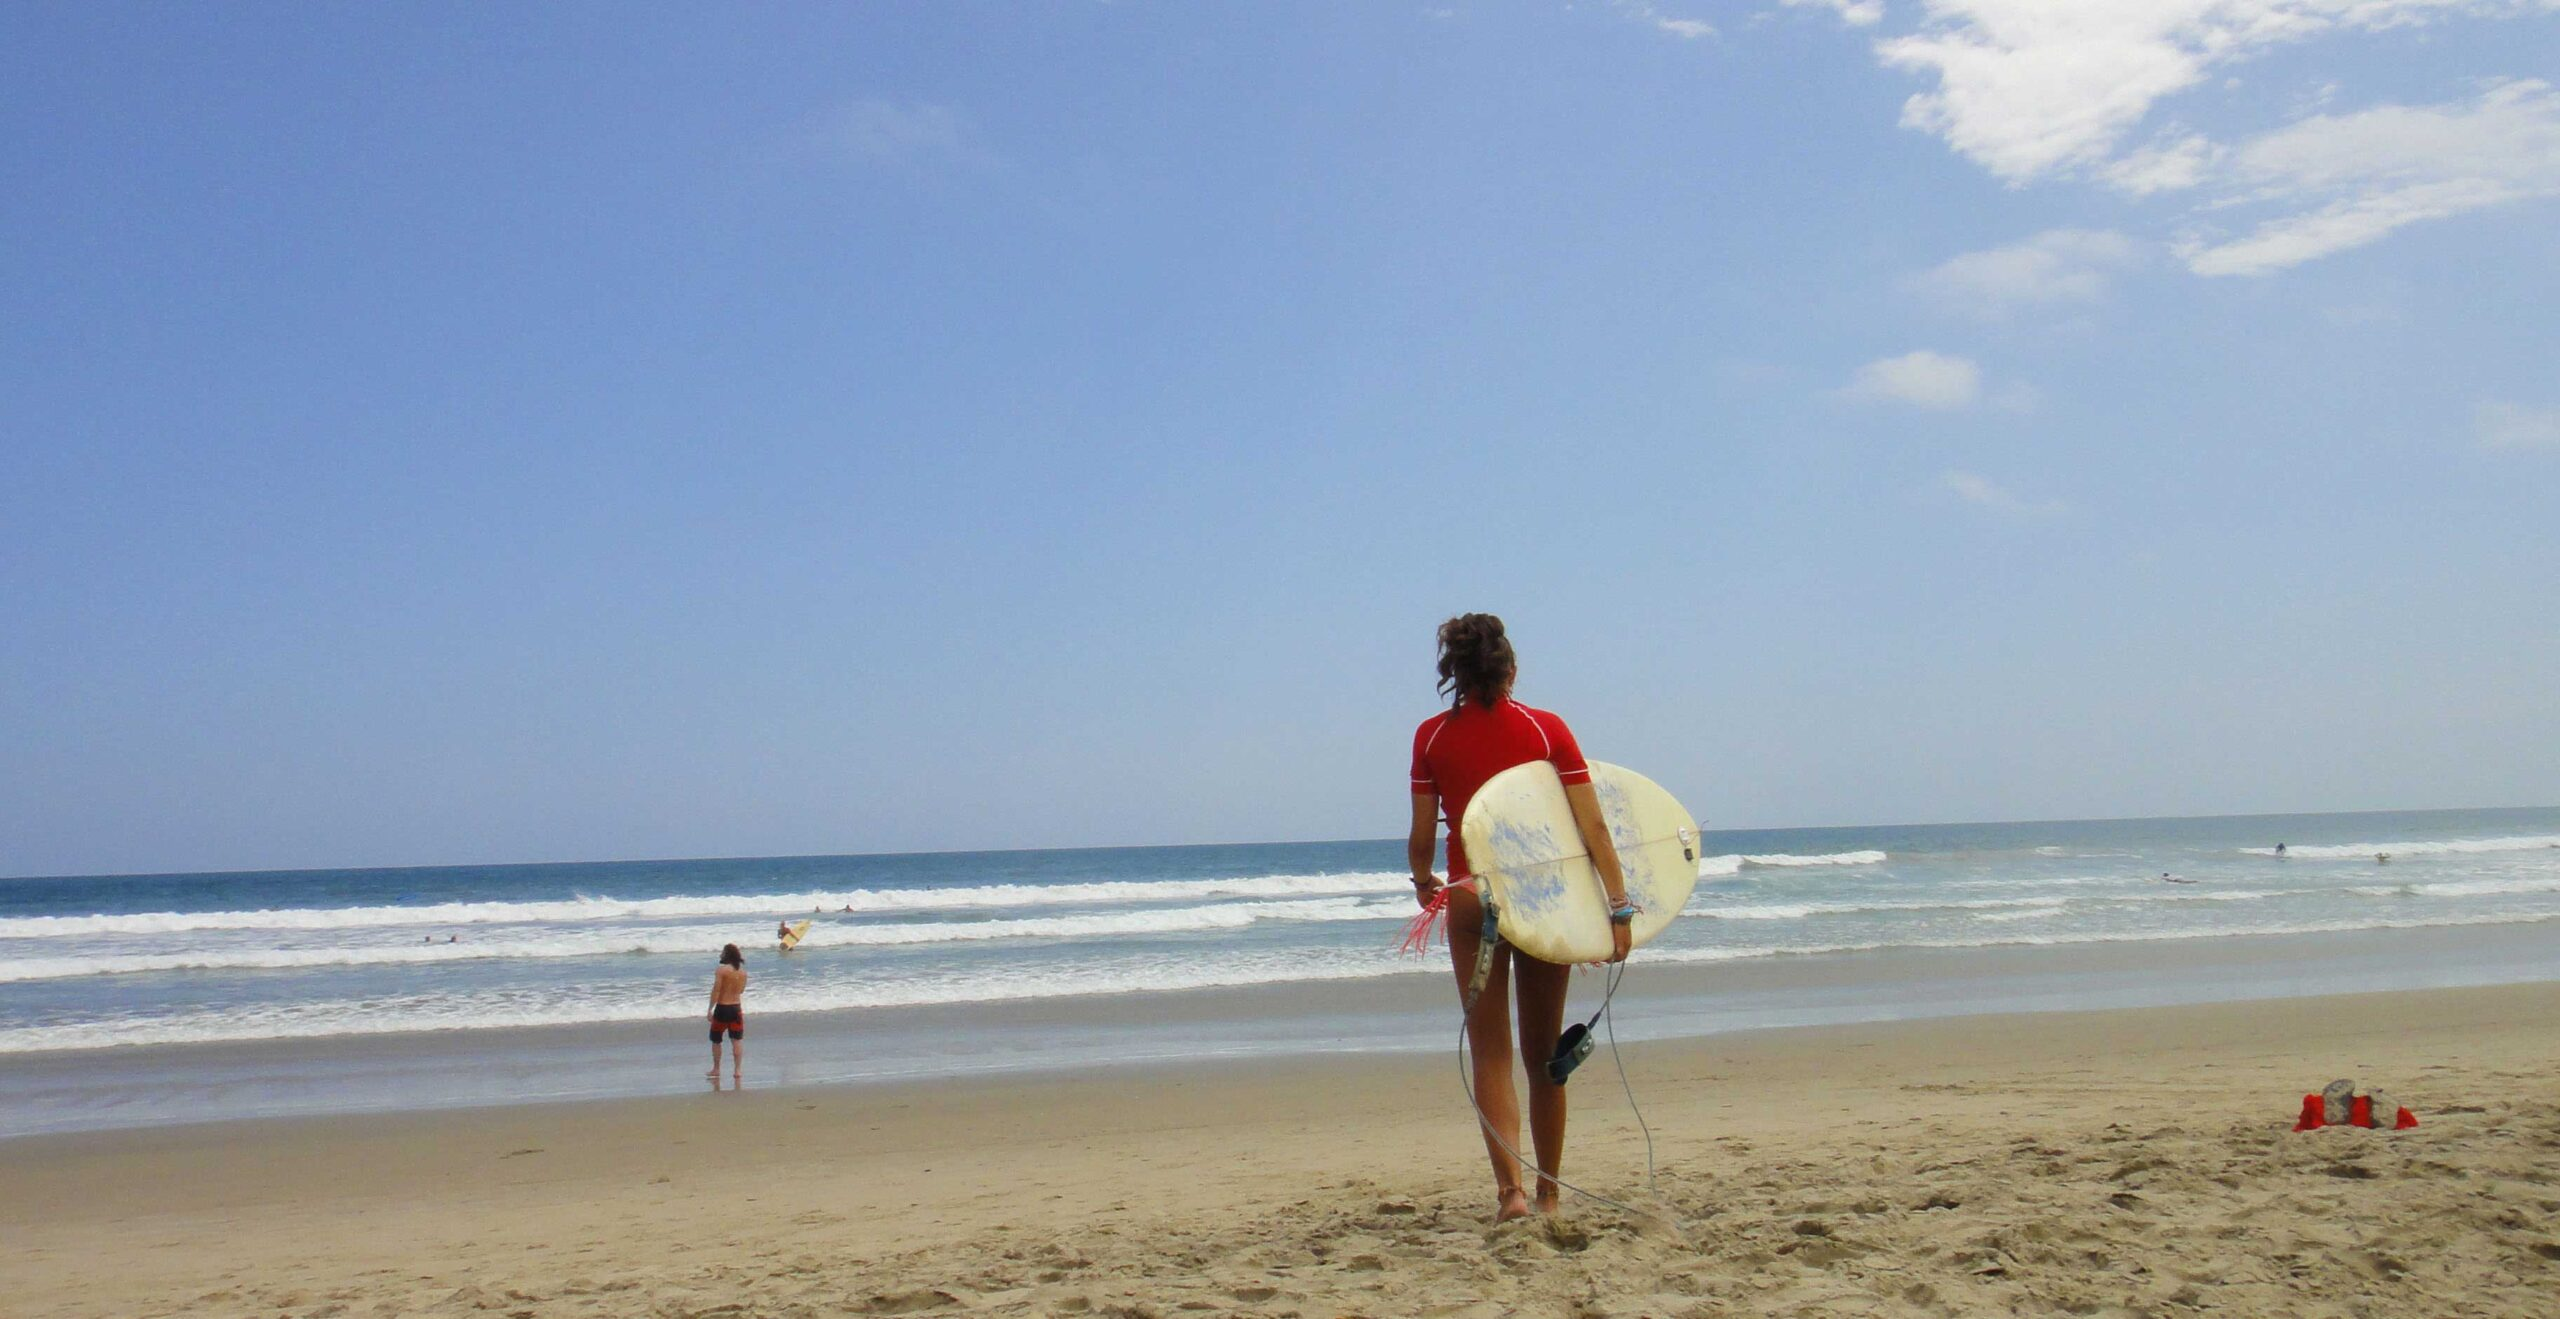 Surfing montanita beach